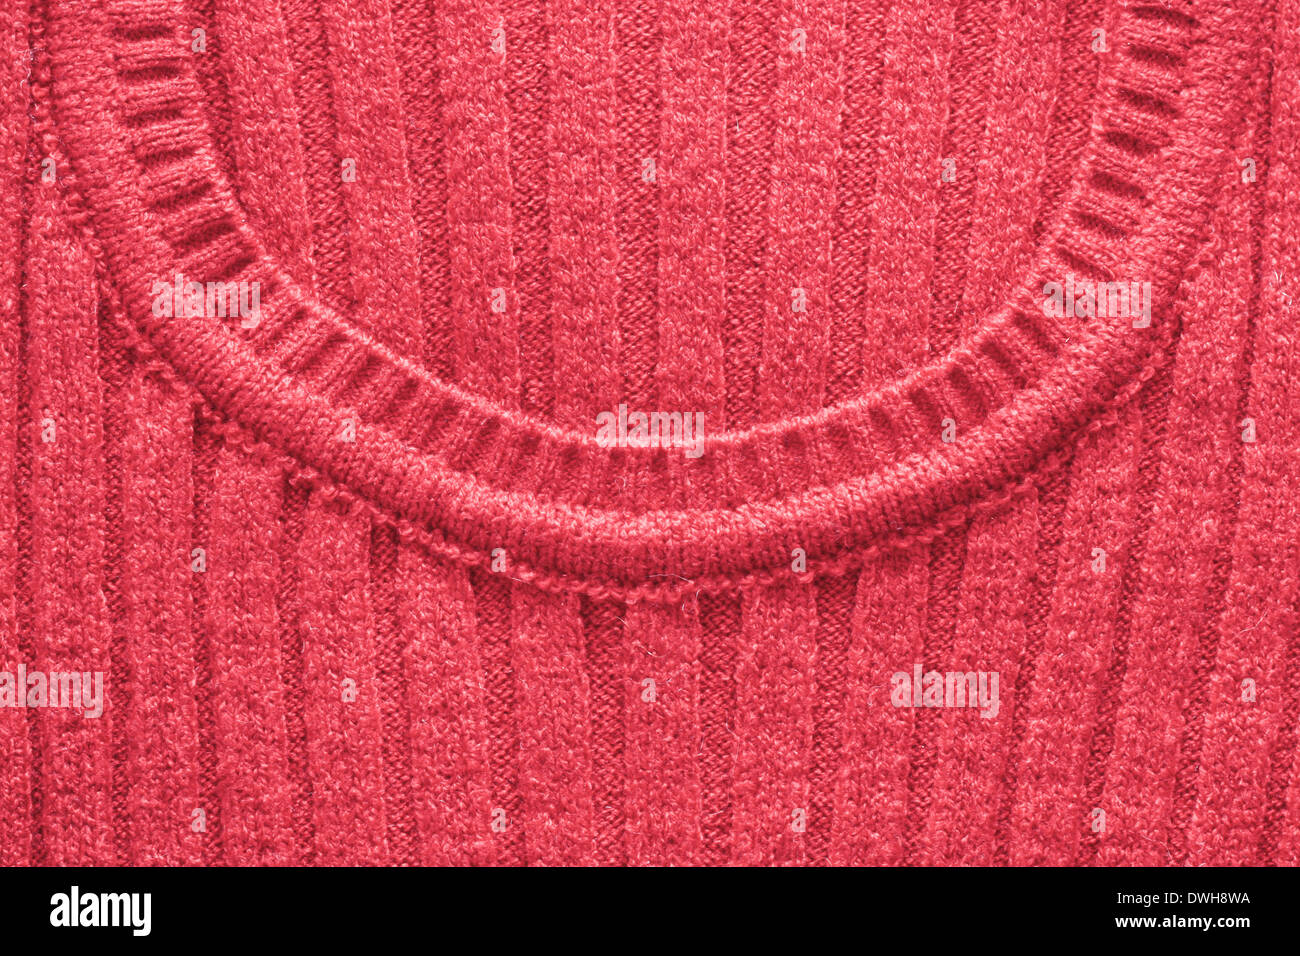 Neck line of a red wool women's jumper - Stock Image